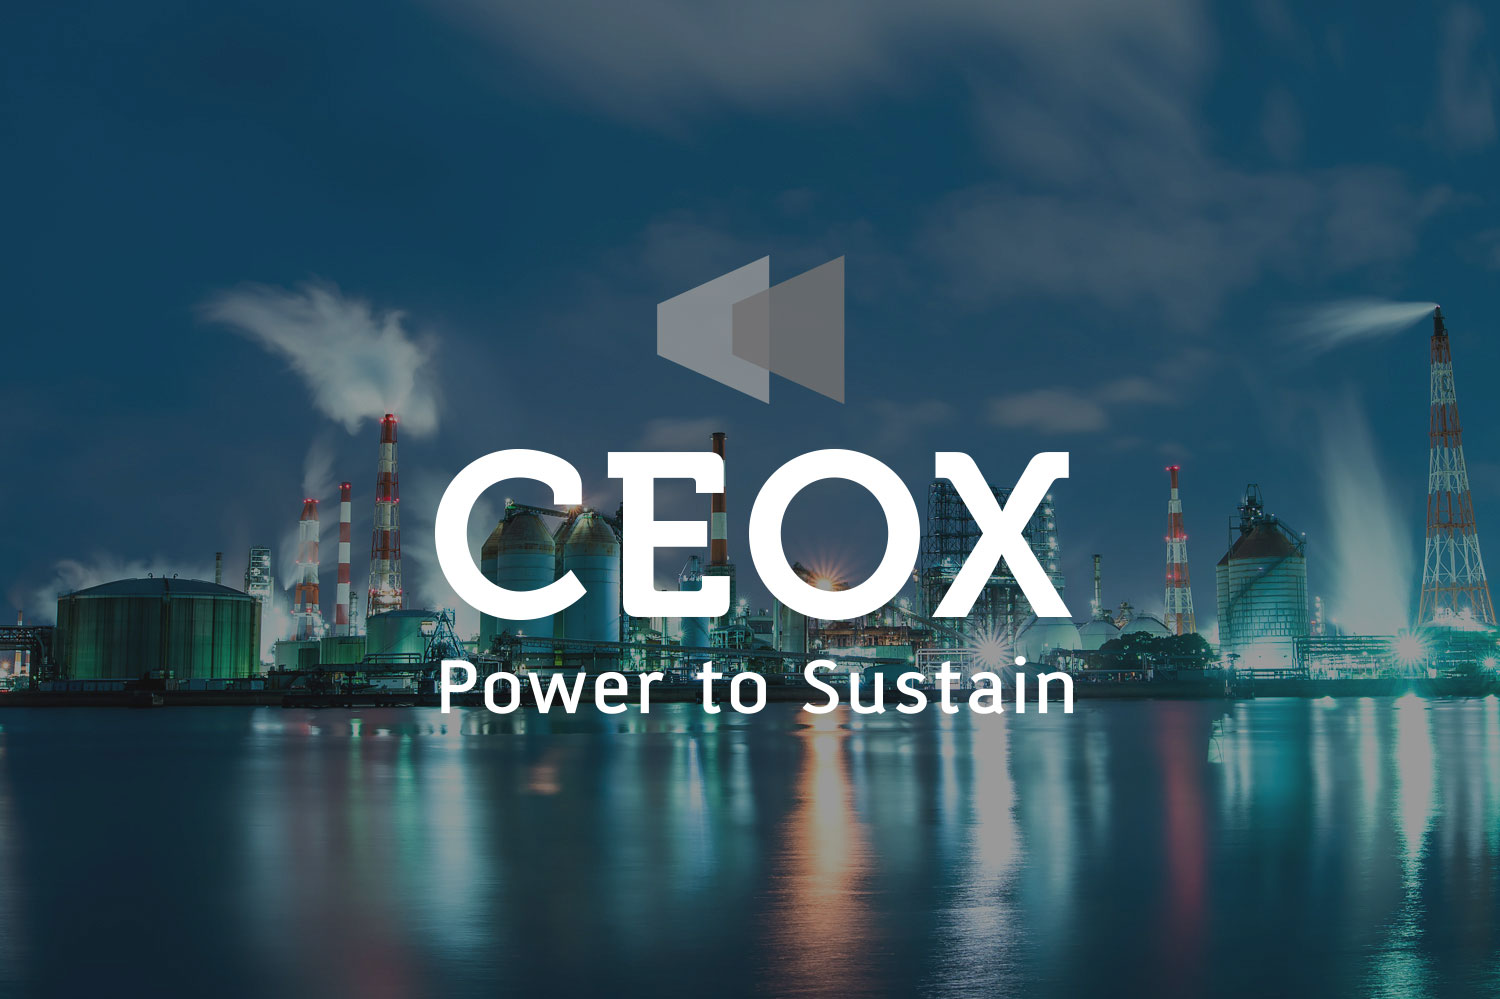 CEOX     Logo and digital prescence for an emissions free industrial powered technology providor